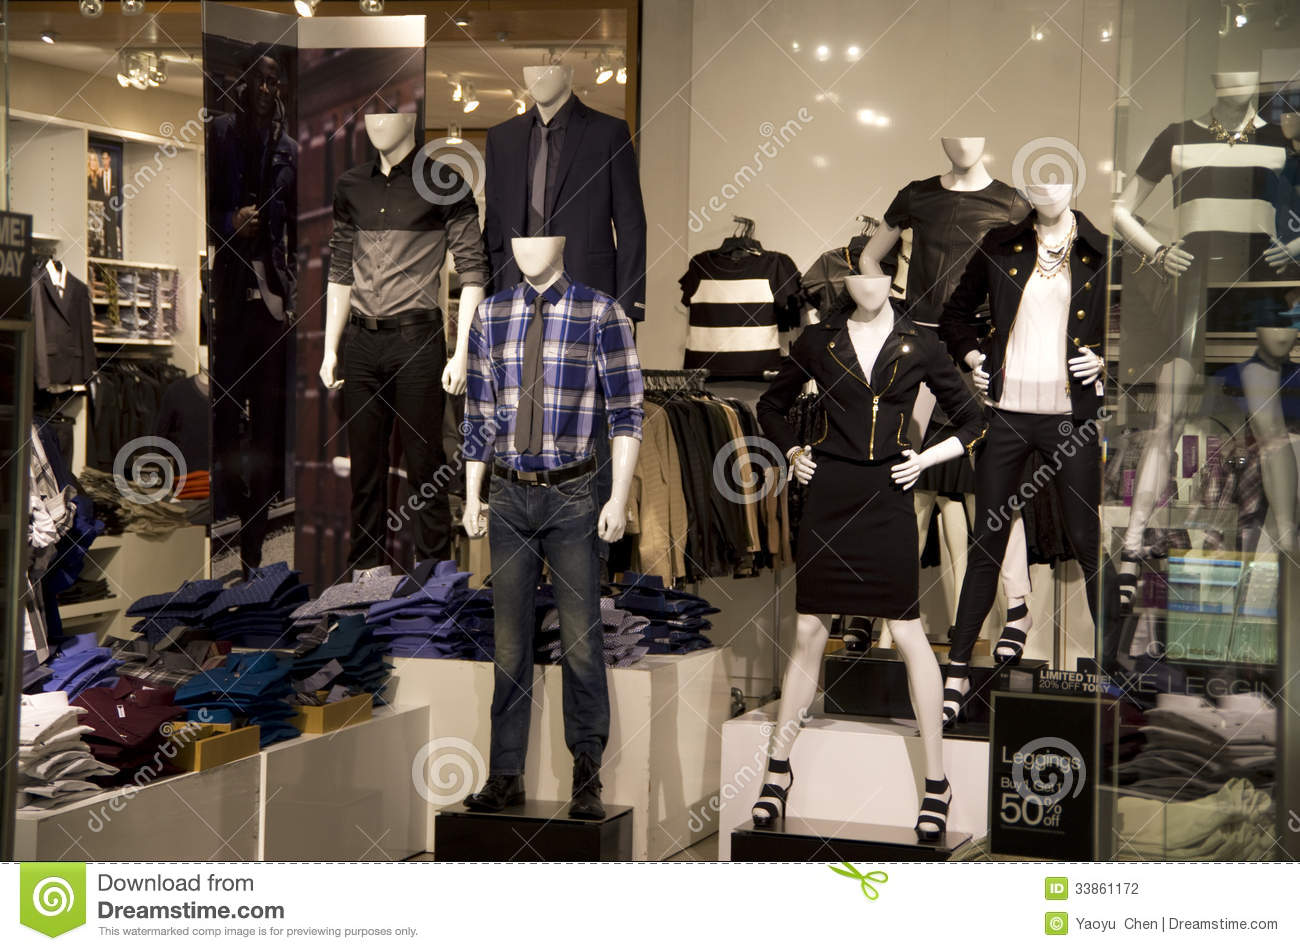 Seattle clothing stores